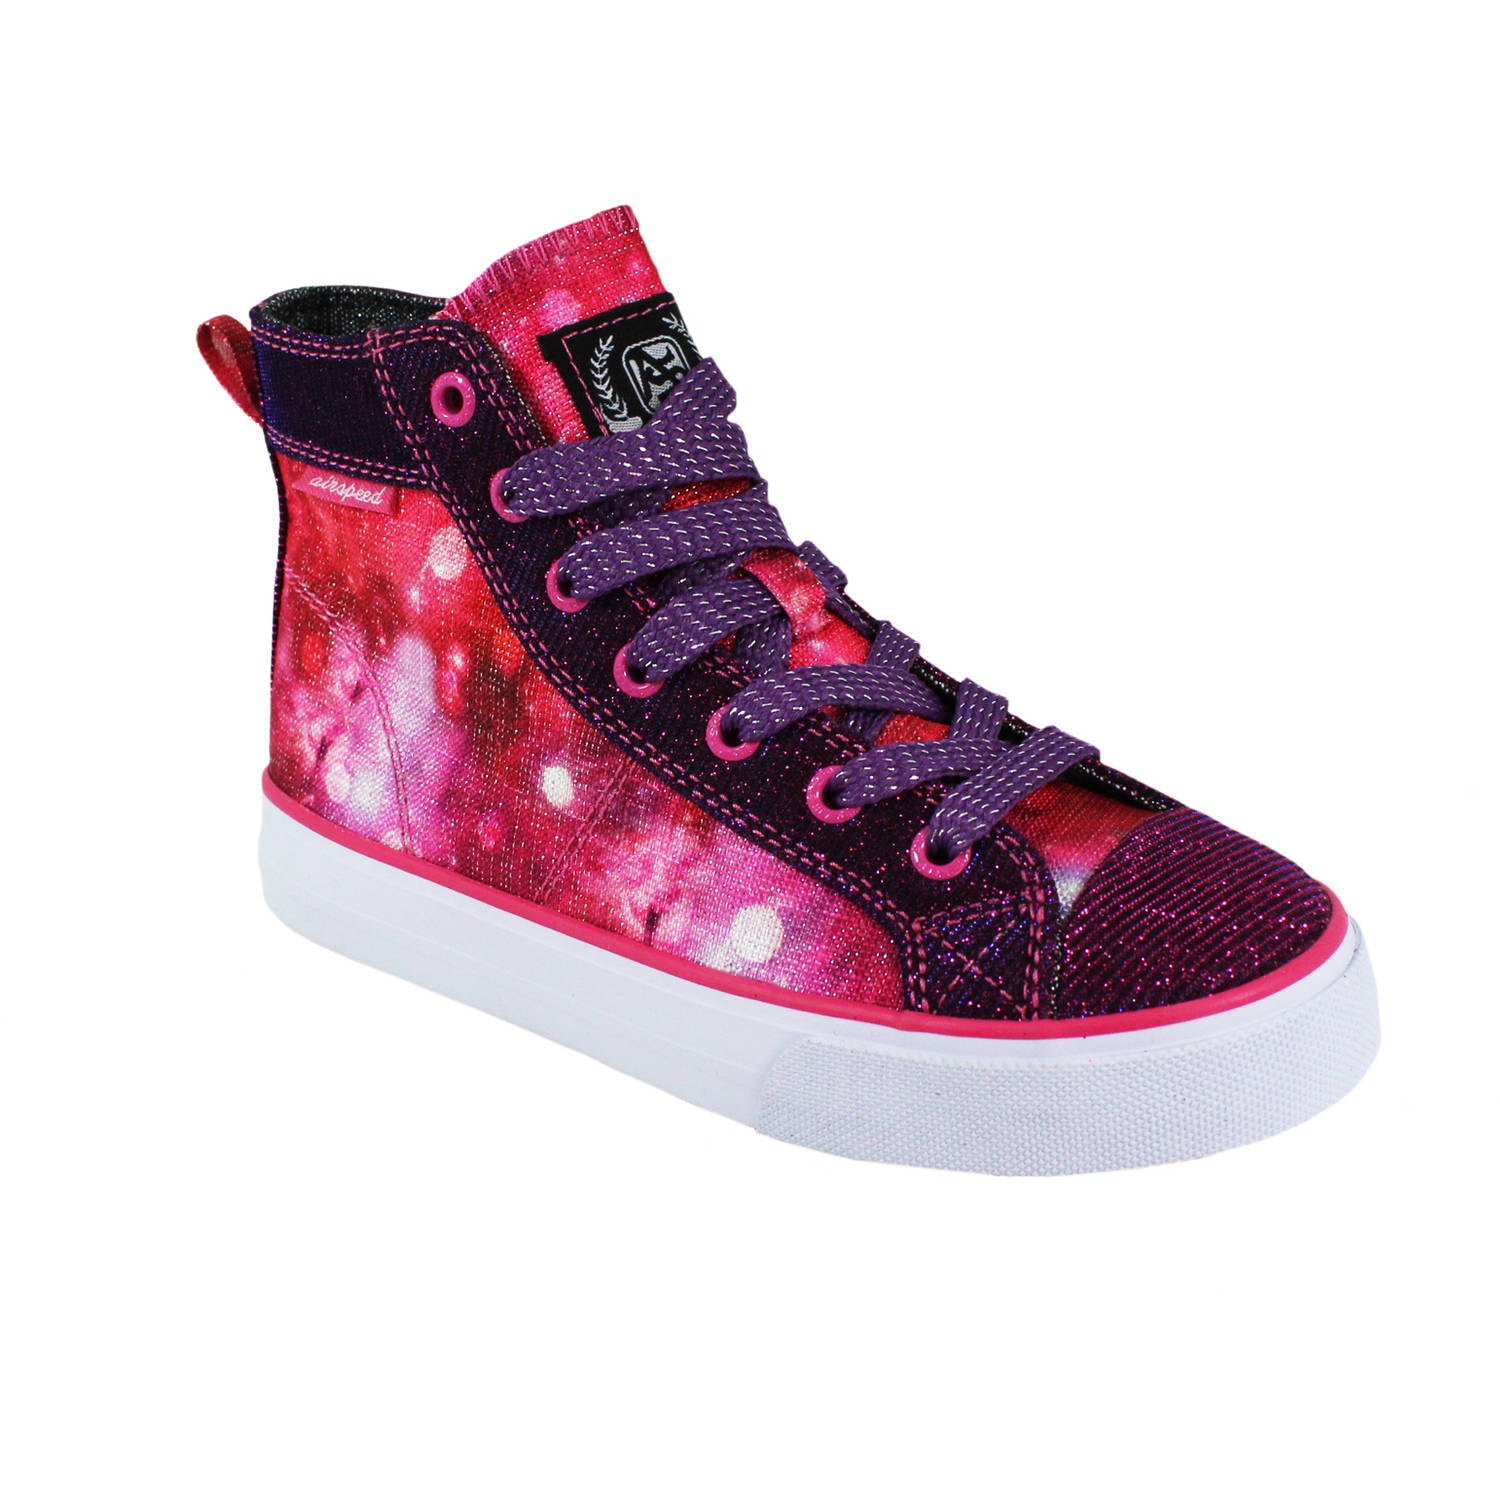 Image of Airspeed Girl's High-top Canvas Sneaker - Exclusive Color